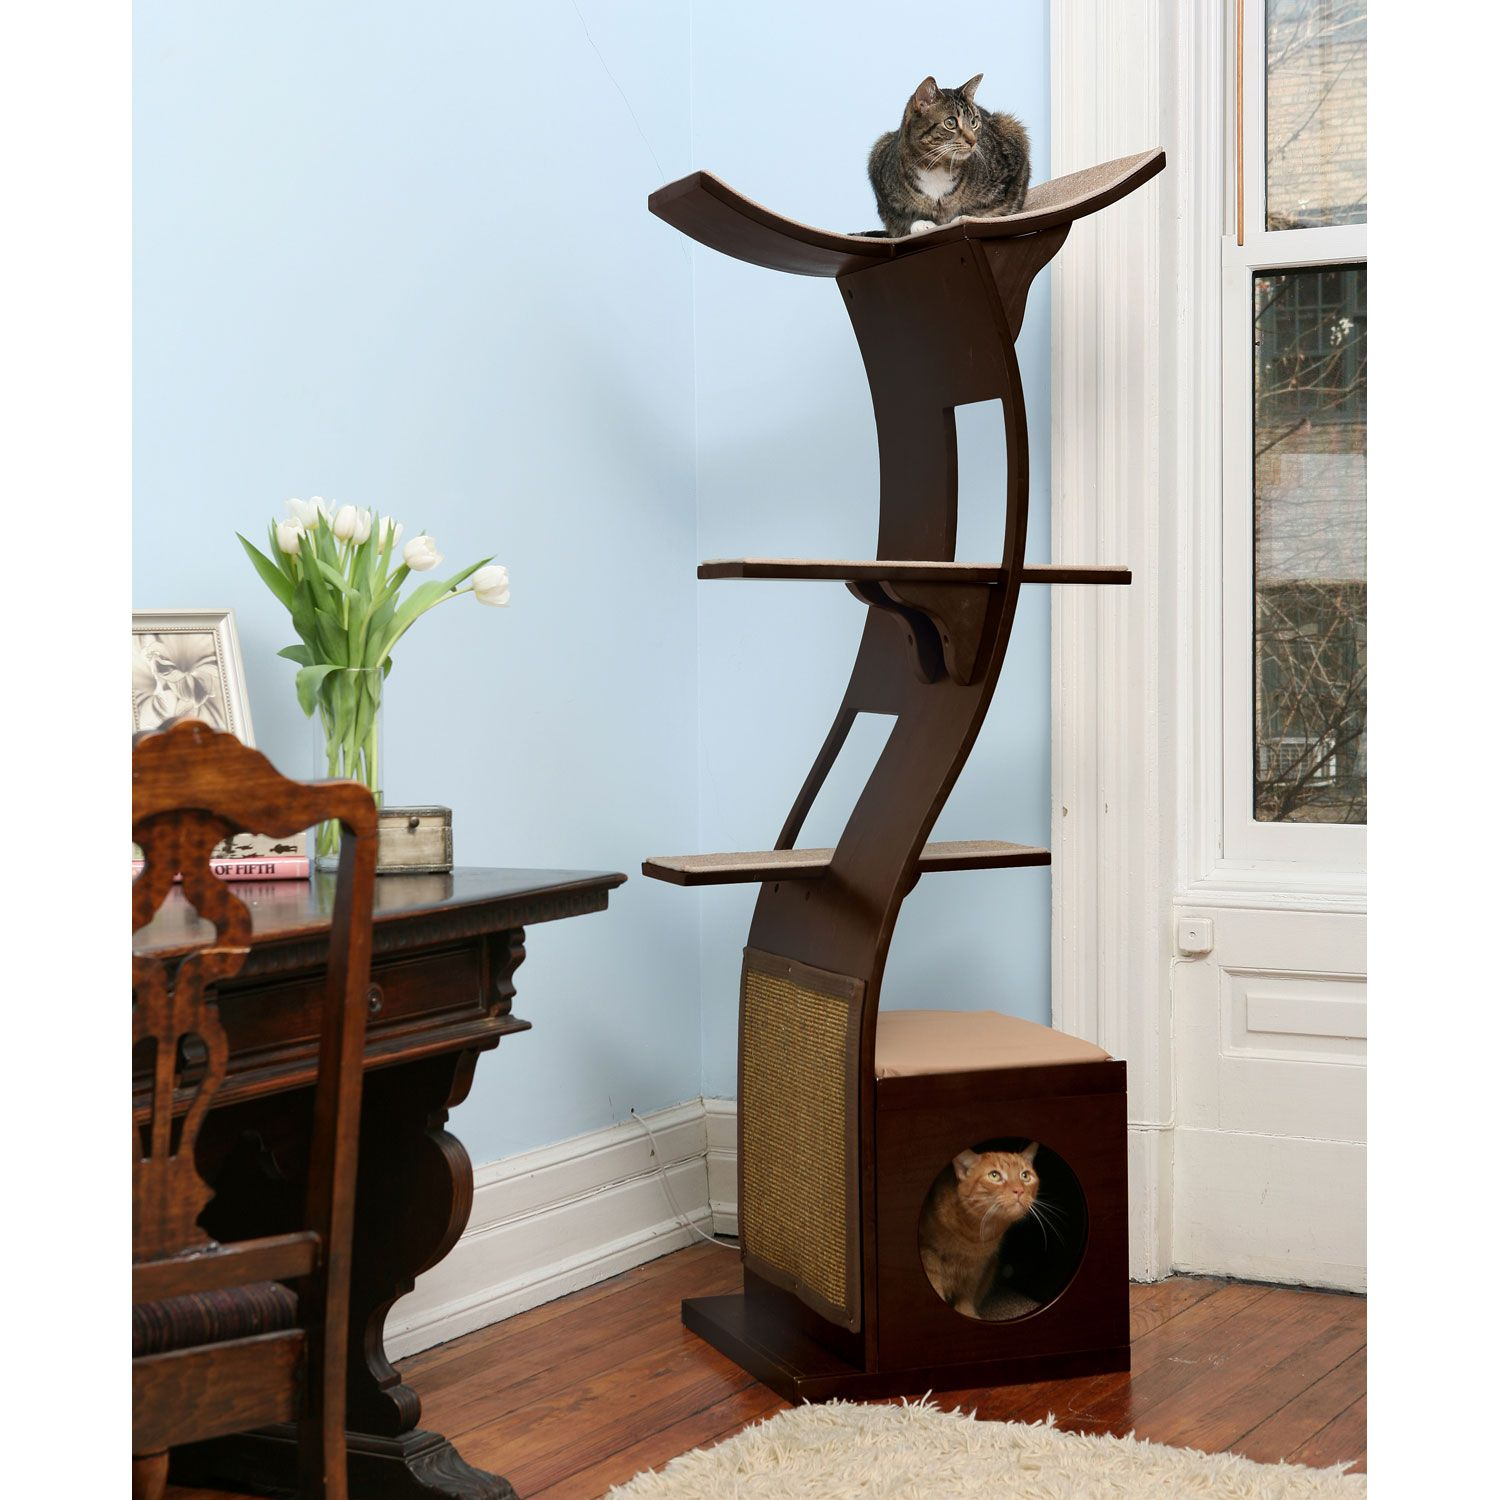 Refined Feline S Lotus Tower Cat Tree Very Pretty And It Looks Vey Friendly